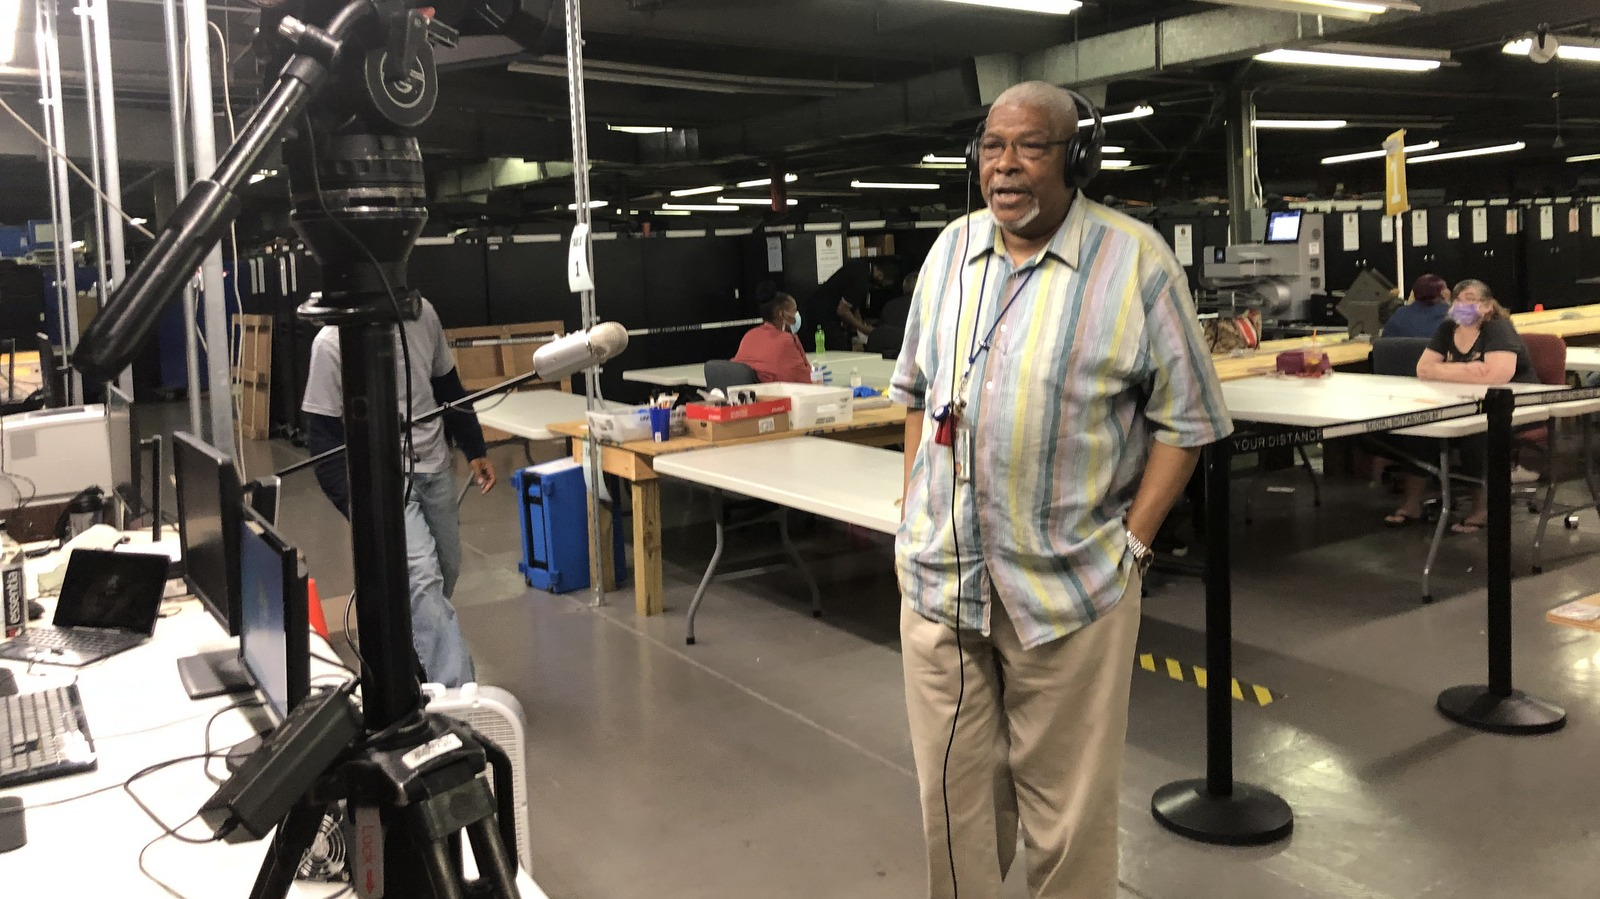 City elections director Armstead Jones discusses at the city's voting machine warehouse. (Fern Shen)